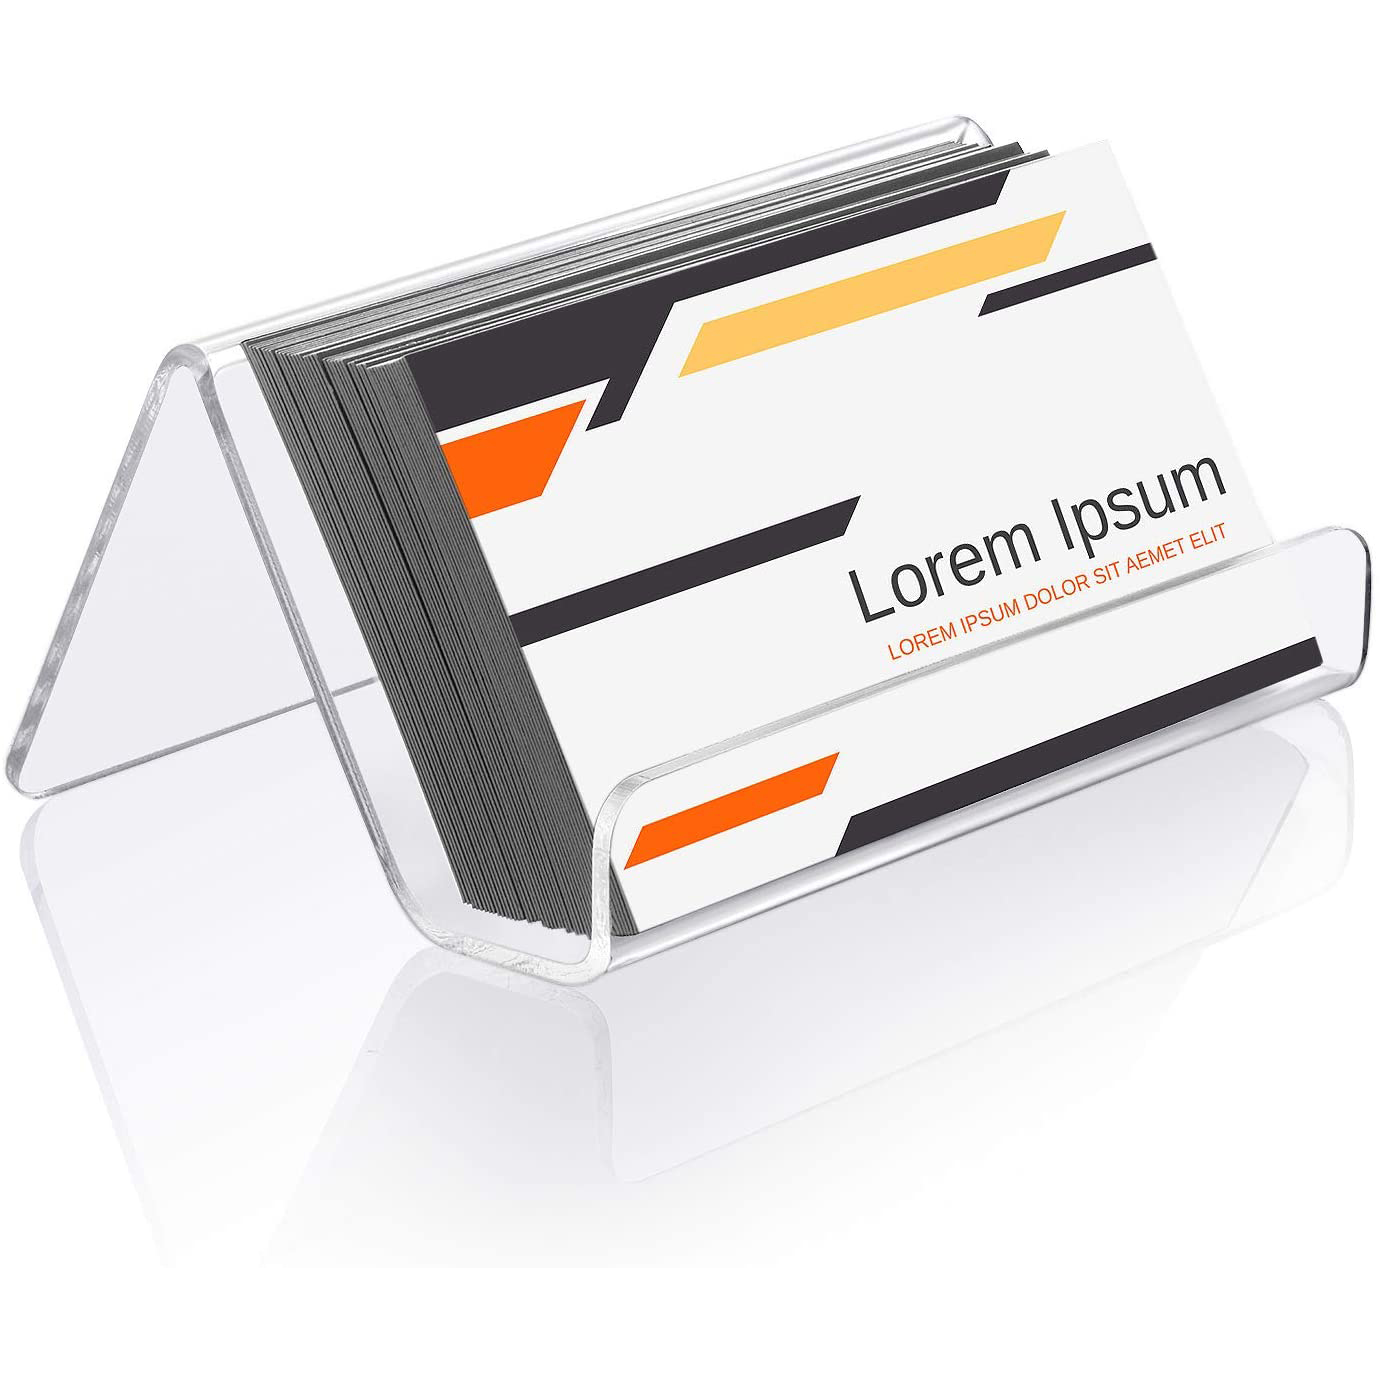 Clear Acrylic Business Cards Display Holders